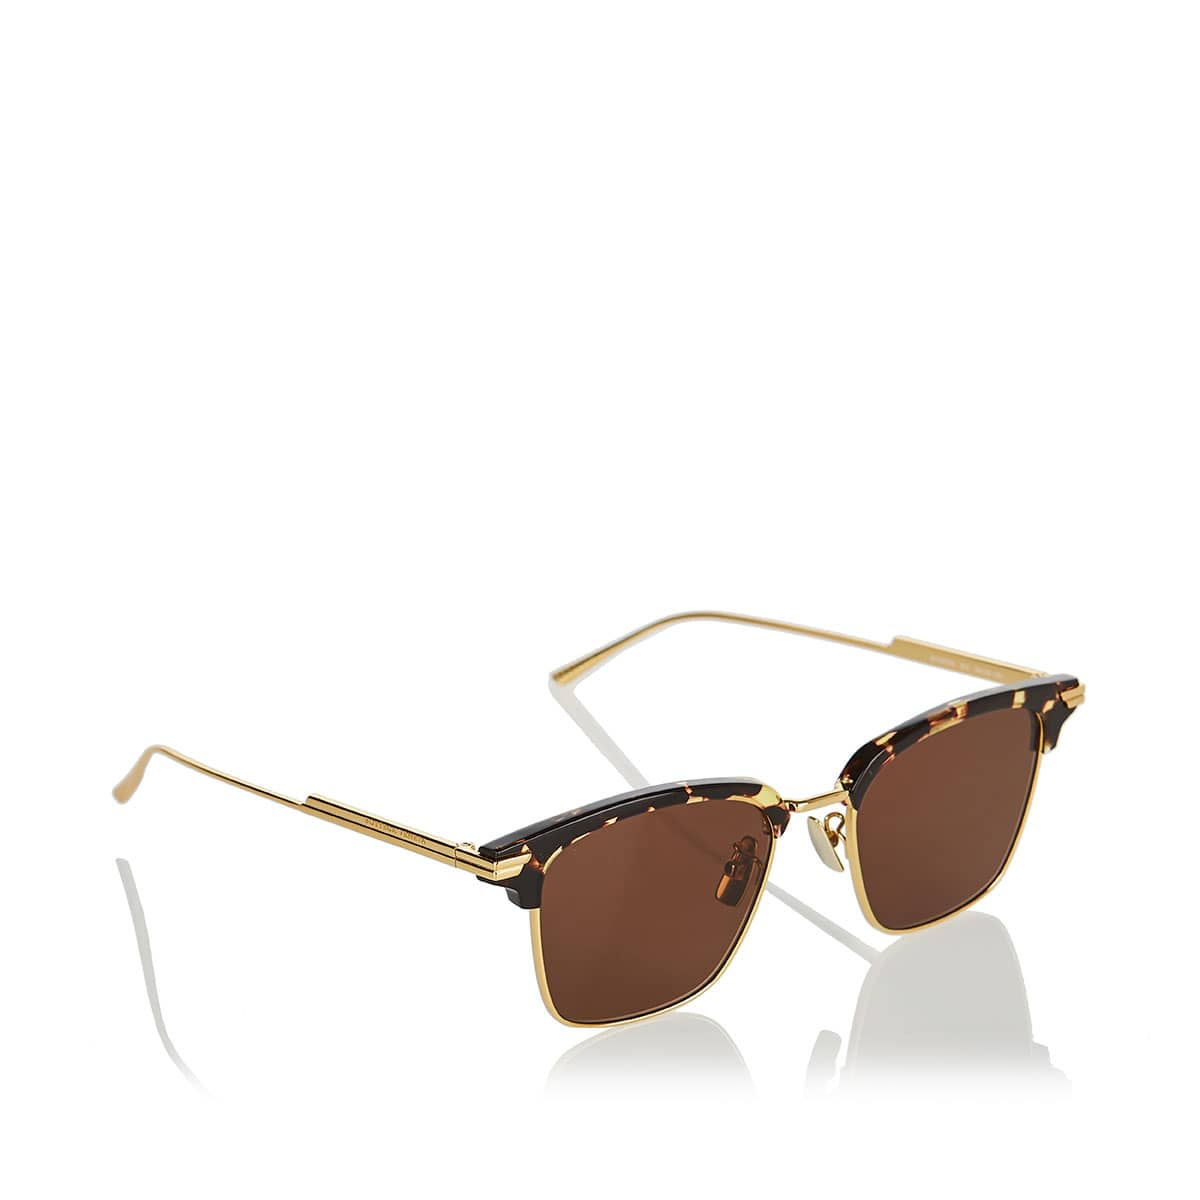 Clubmaster metal and acetate sunglasses